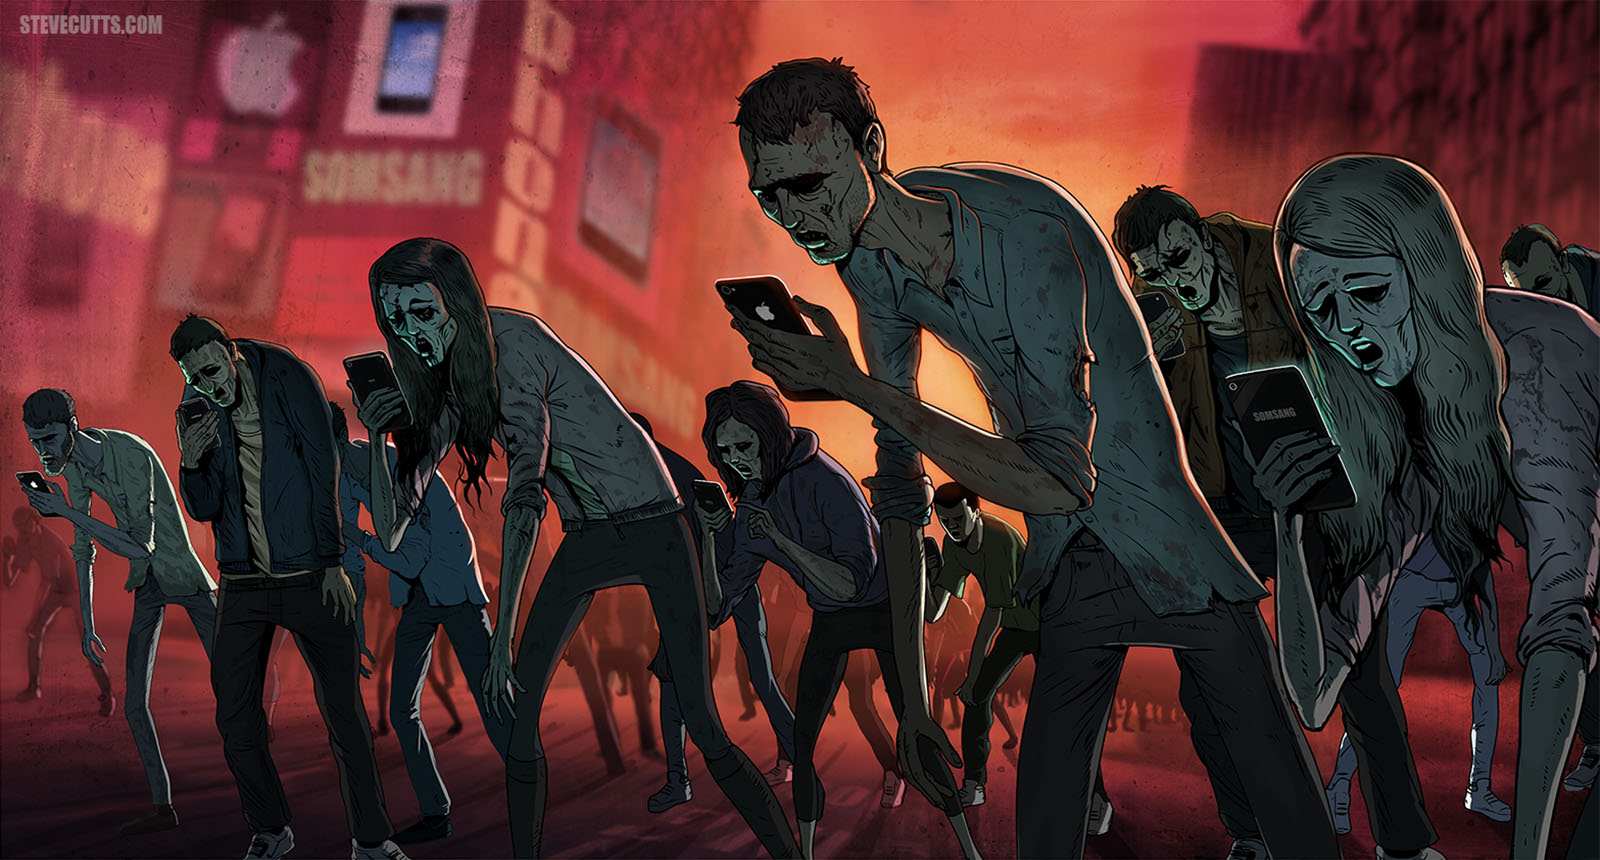 Social Media Zombies - Image by Steve Cutts - a crowd of zombies wandering aimlessly whilst looking at smart phones.